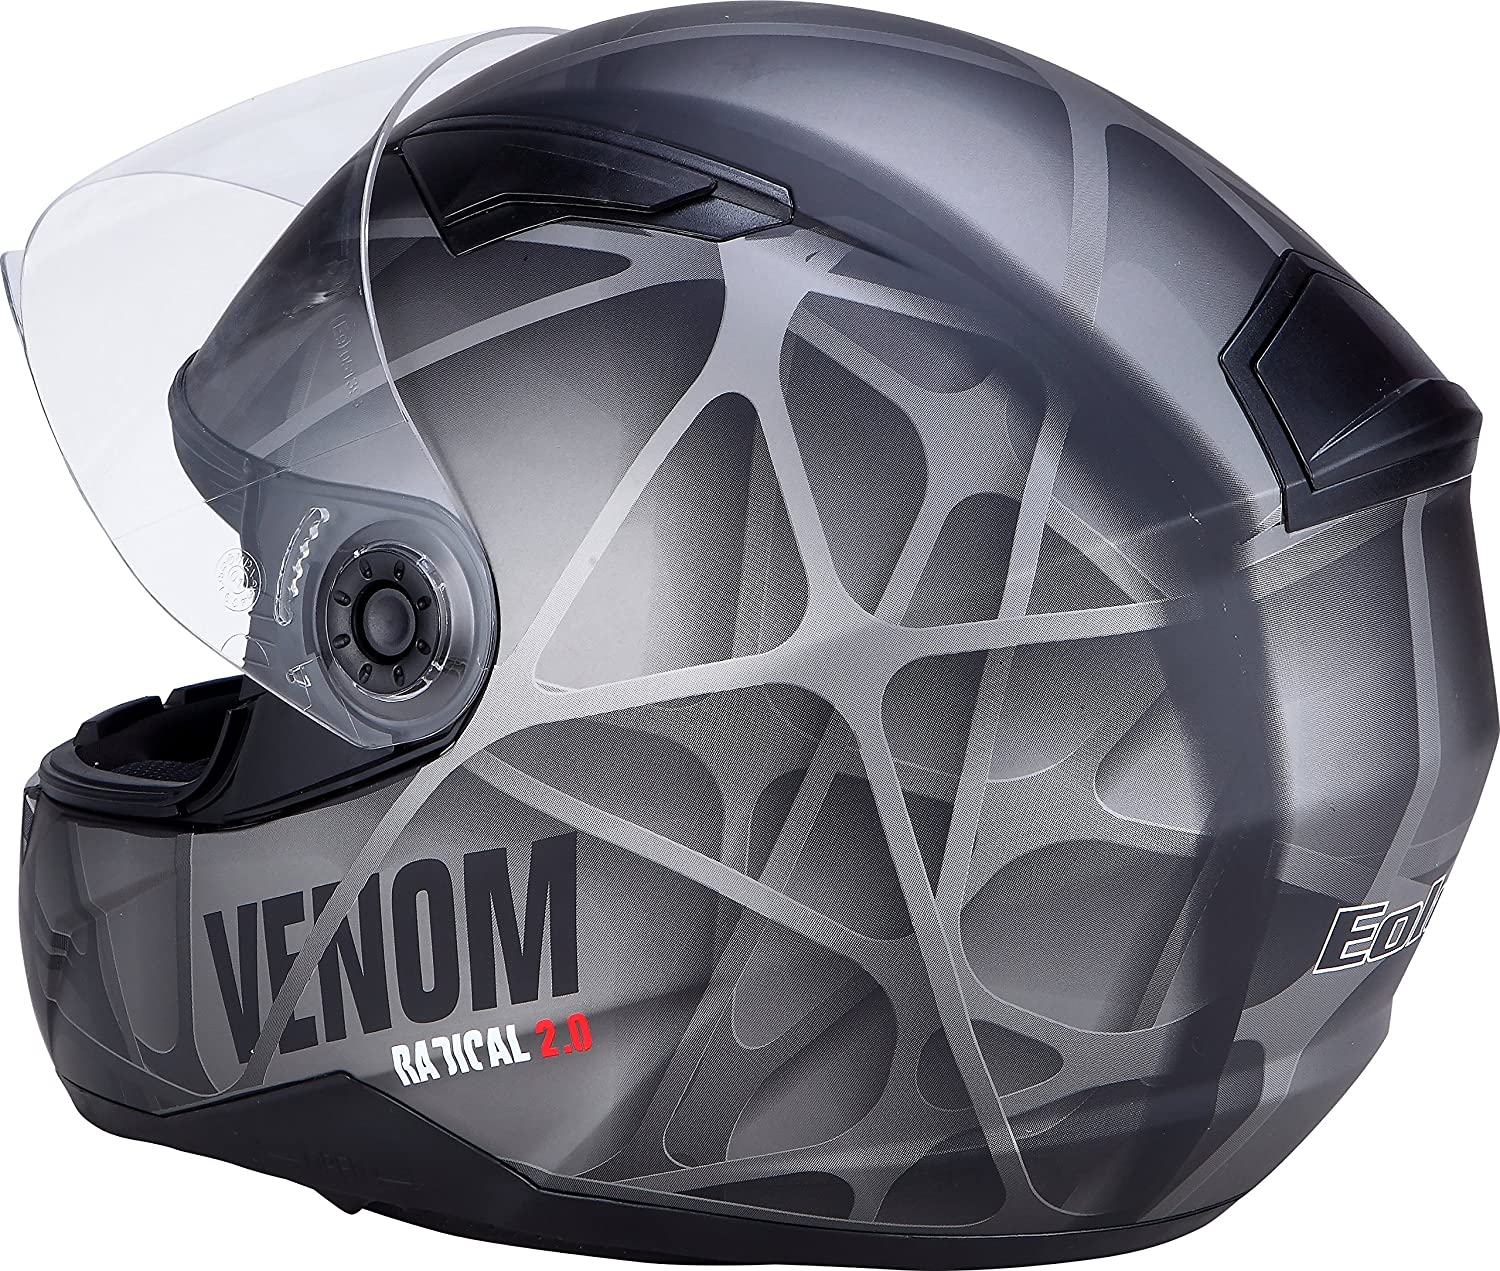 Amazon.es: EOLE casco integral DS Venom, gris, talla XL